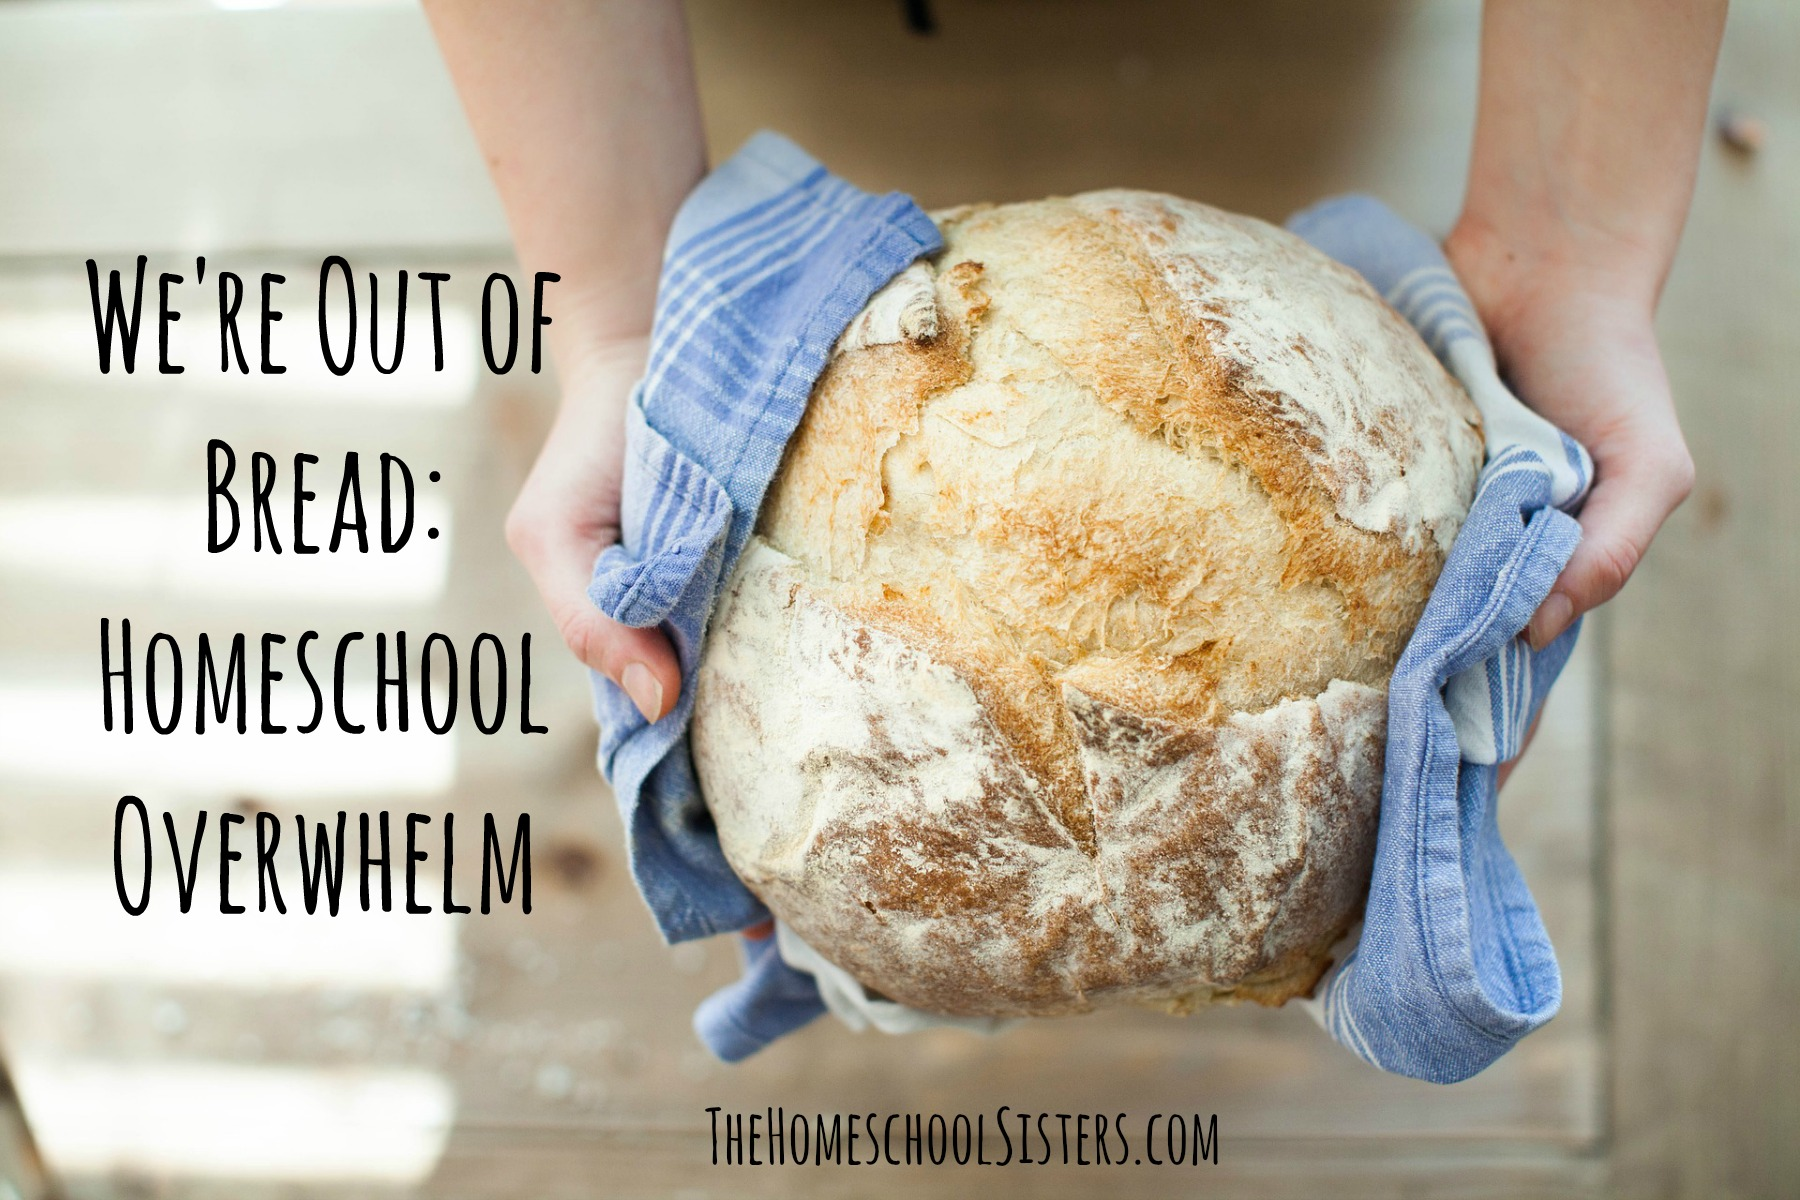 We're Out of Bread: Homeschool Overwhelm | The Homeschool Sisters Podcast